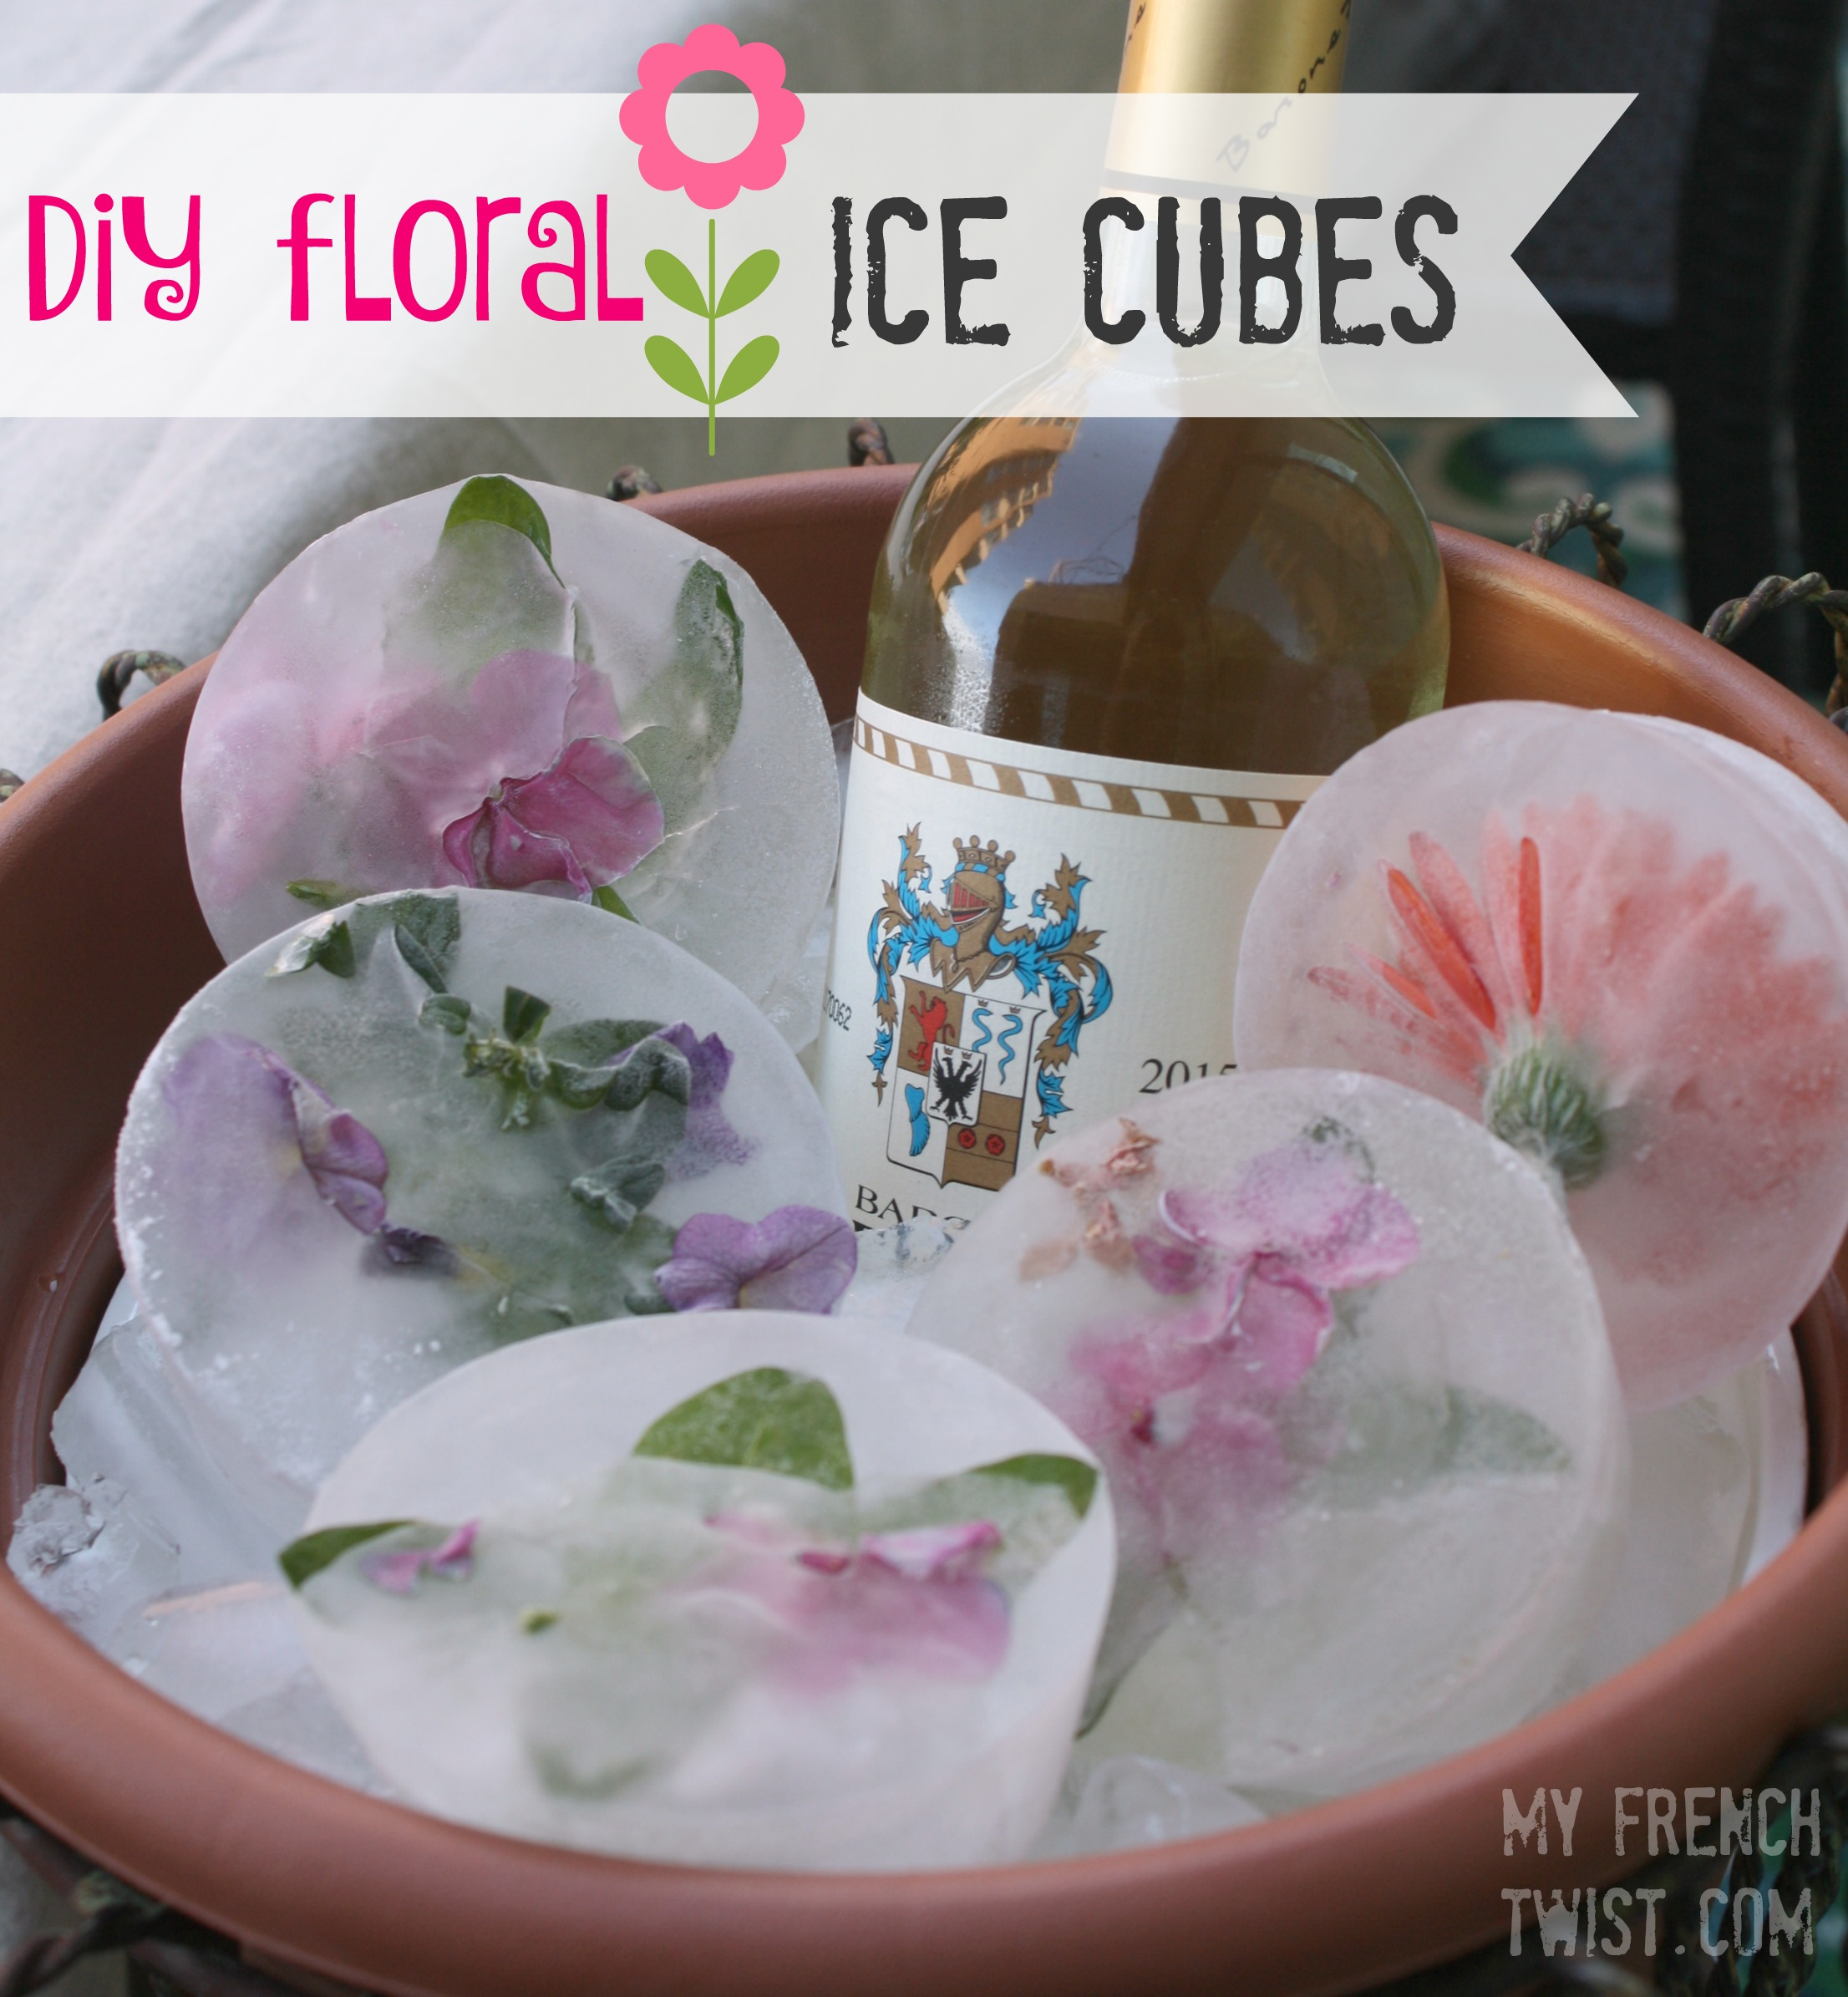 floral ice cubes - myfrenchtwist.com